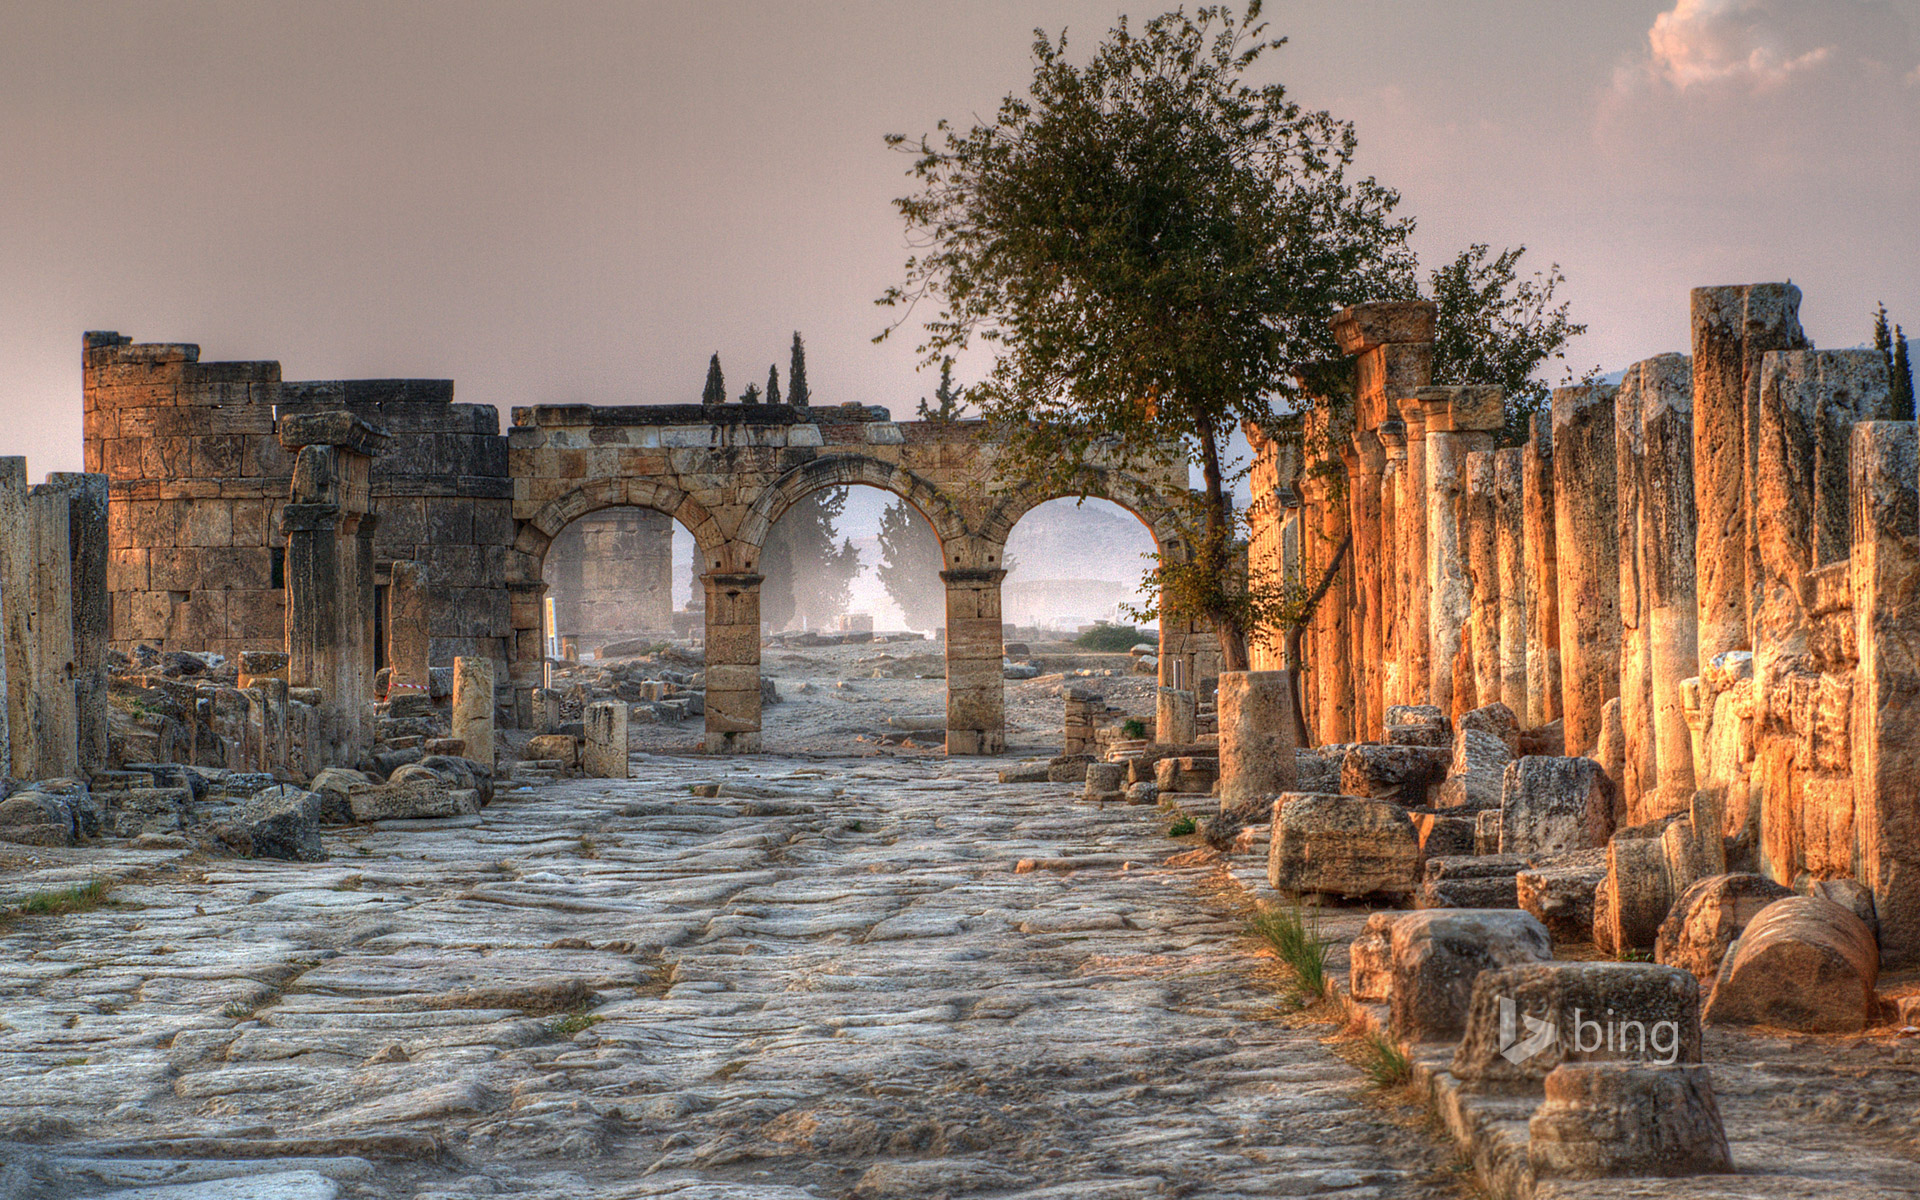 Ancient city of Hierapolis, adjacent to Pamukkale, Turkey